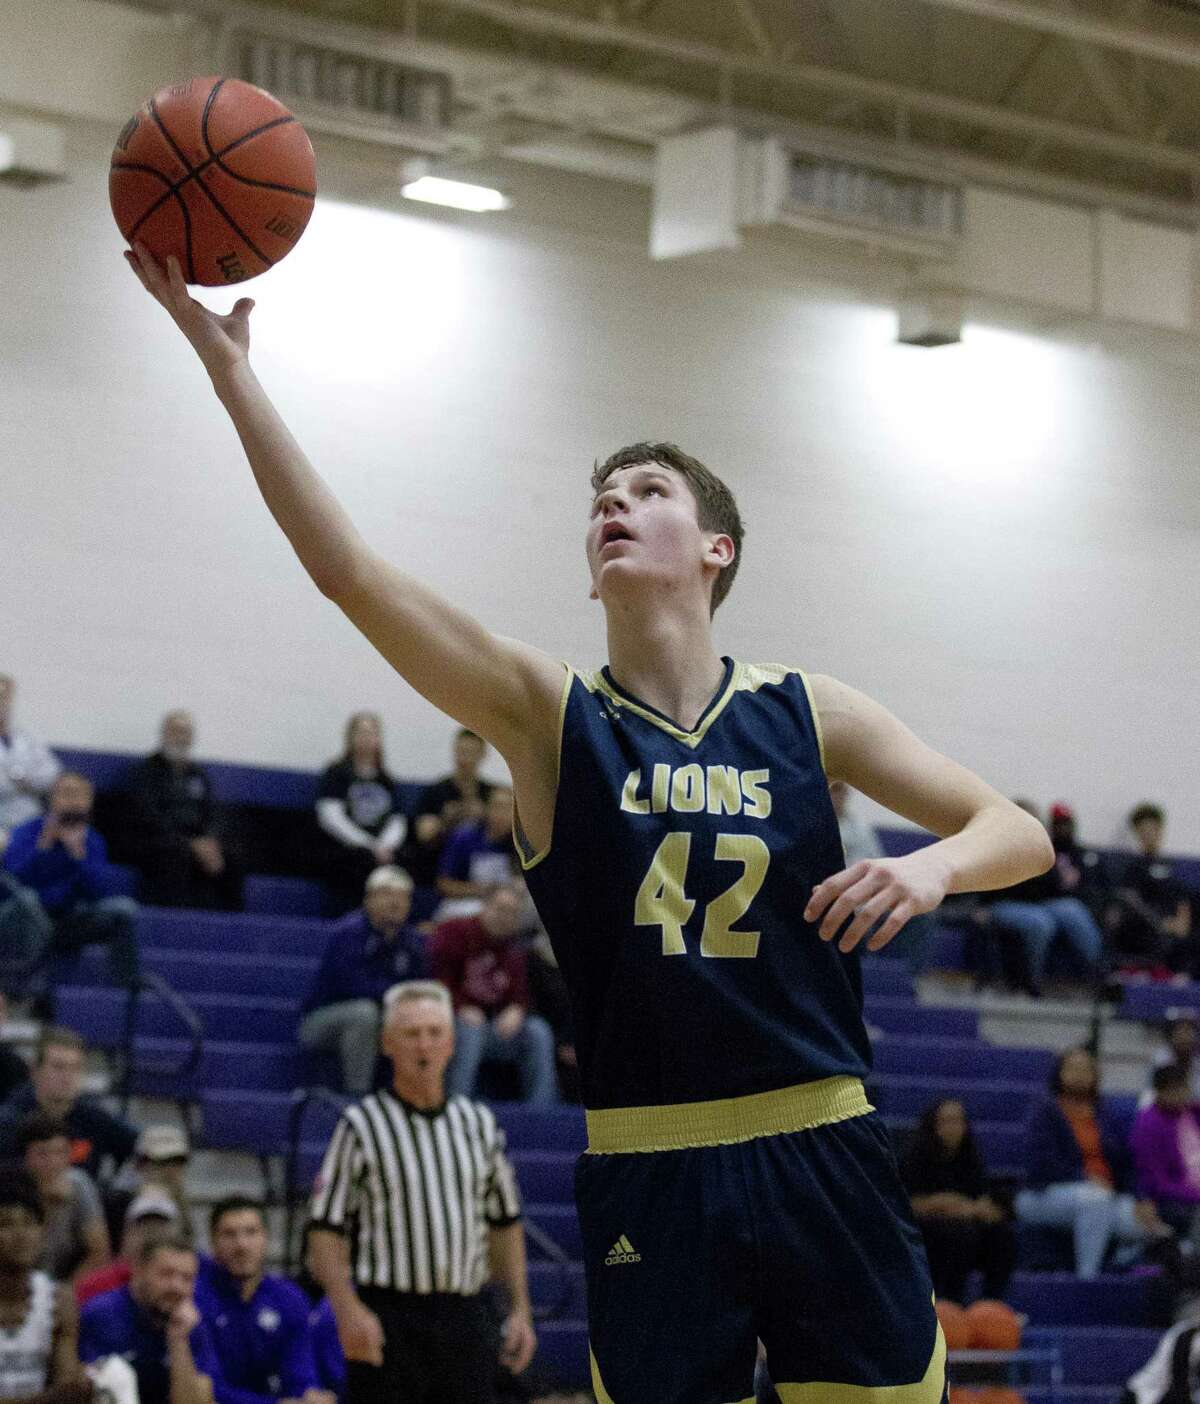 Lake Creek forward Hudson Boyd (42) is The Courier's Newcomer of the Year. In 2018-19, the sophomore averaged 12.1 points and 3.1 rebounds per game.